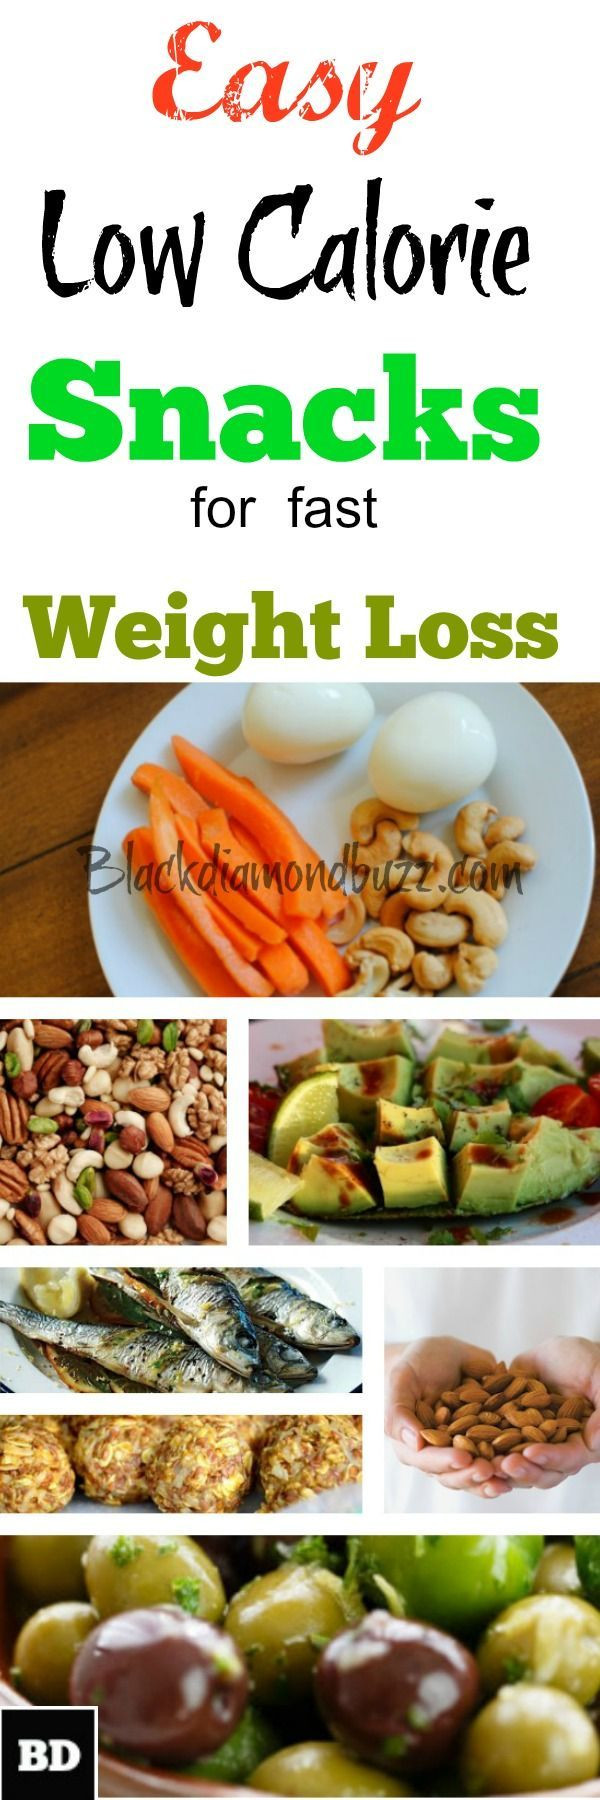 Healthy Snacks On The Go For Weight Loss  Best 25 Weight loss snacks ideas on Pinterest